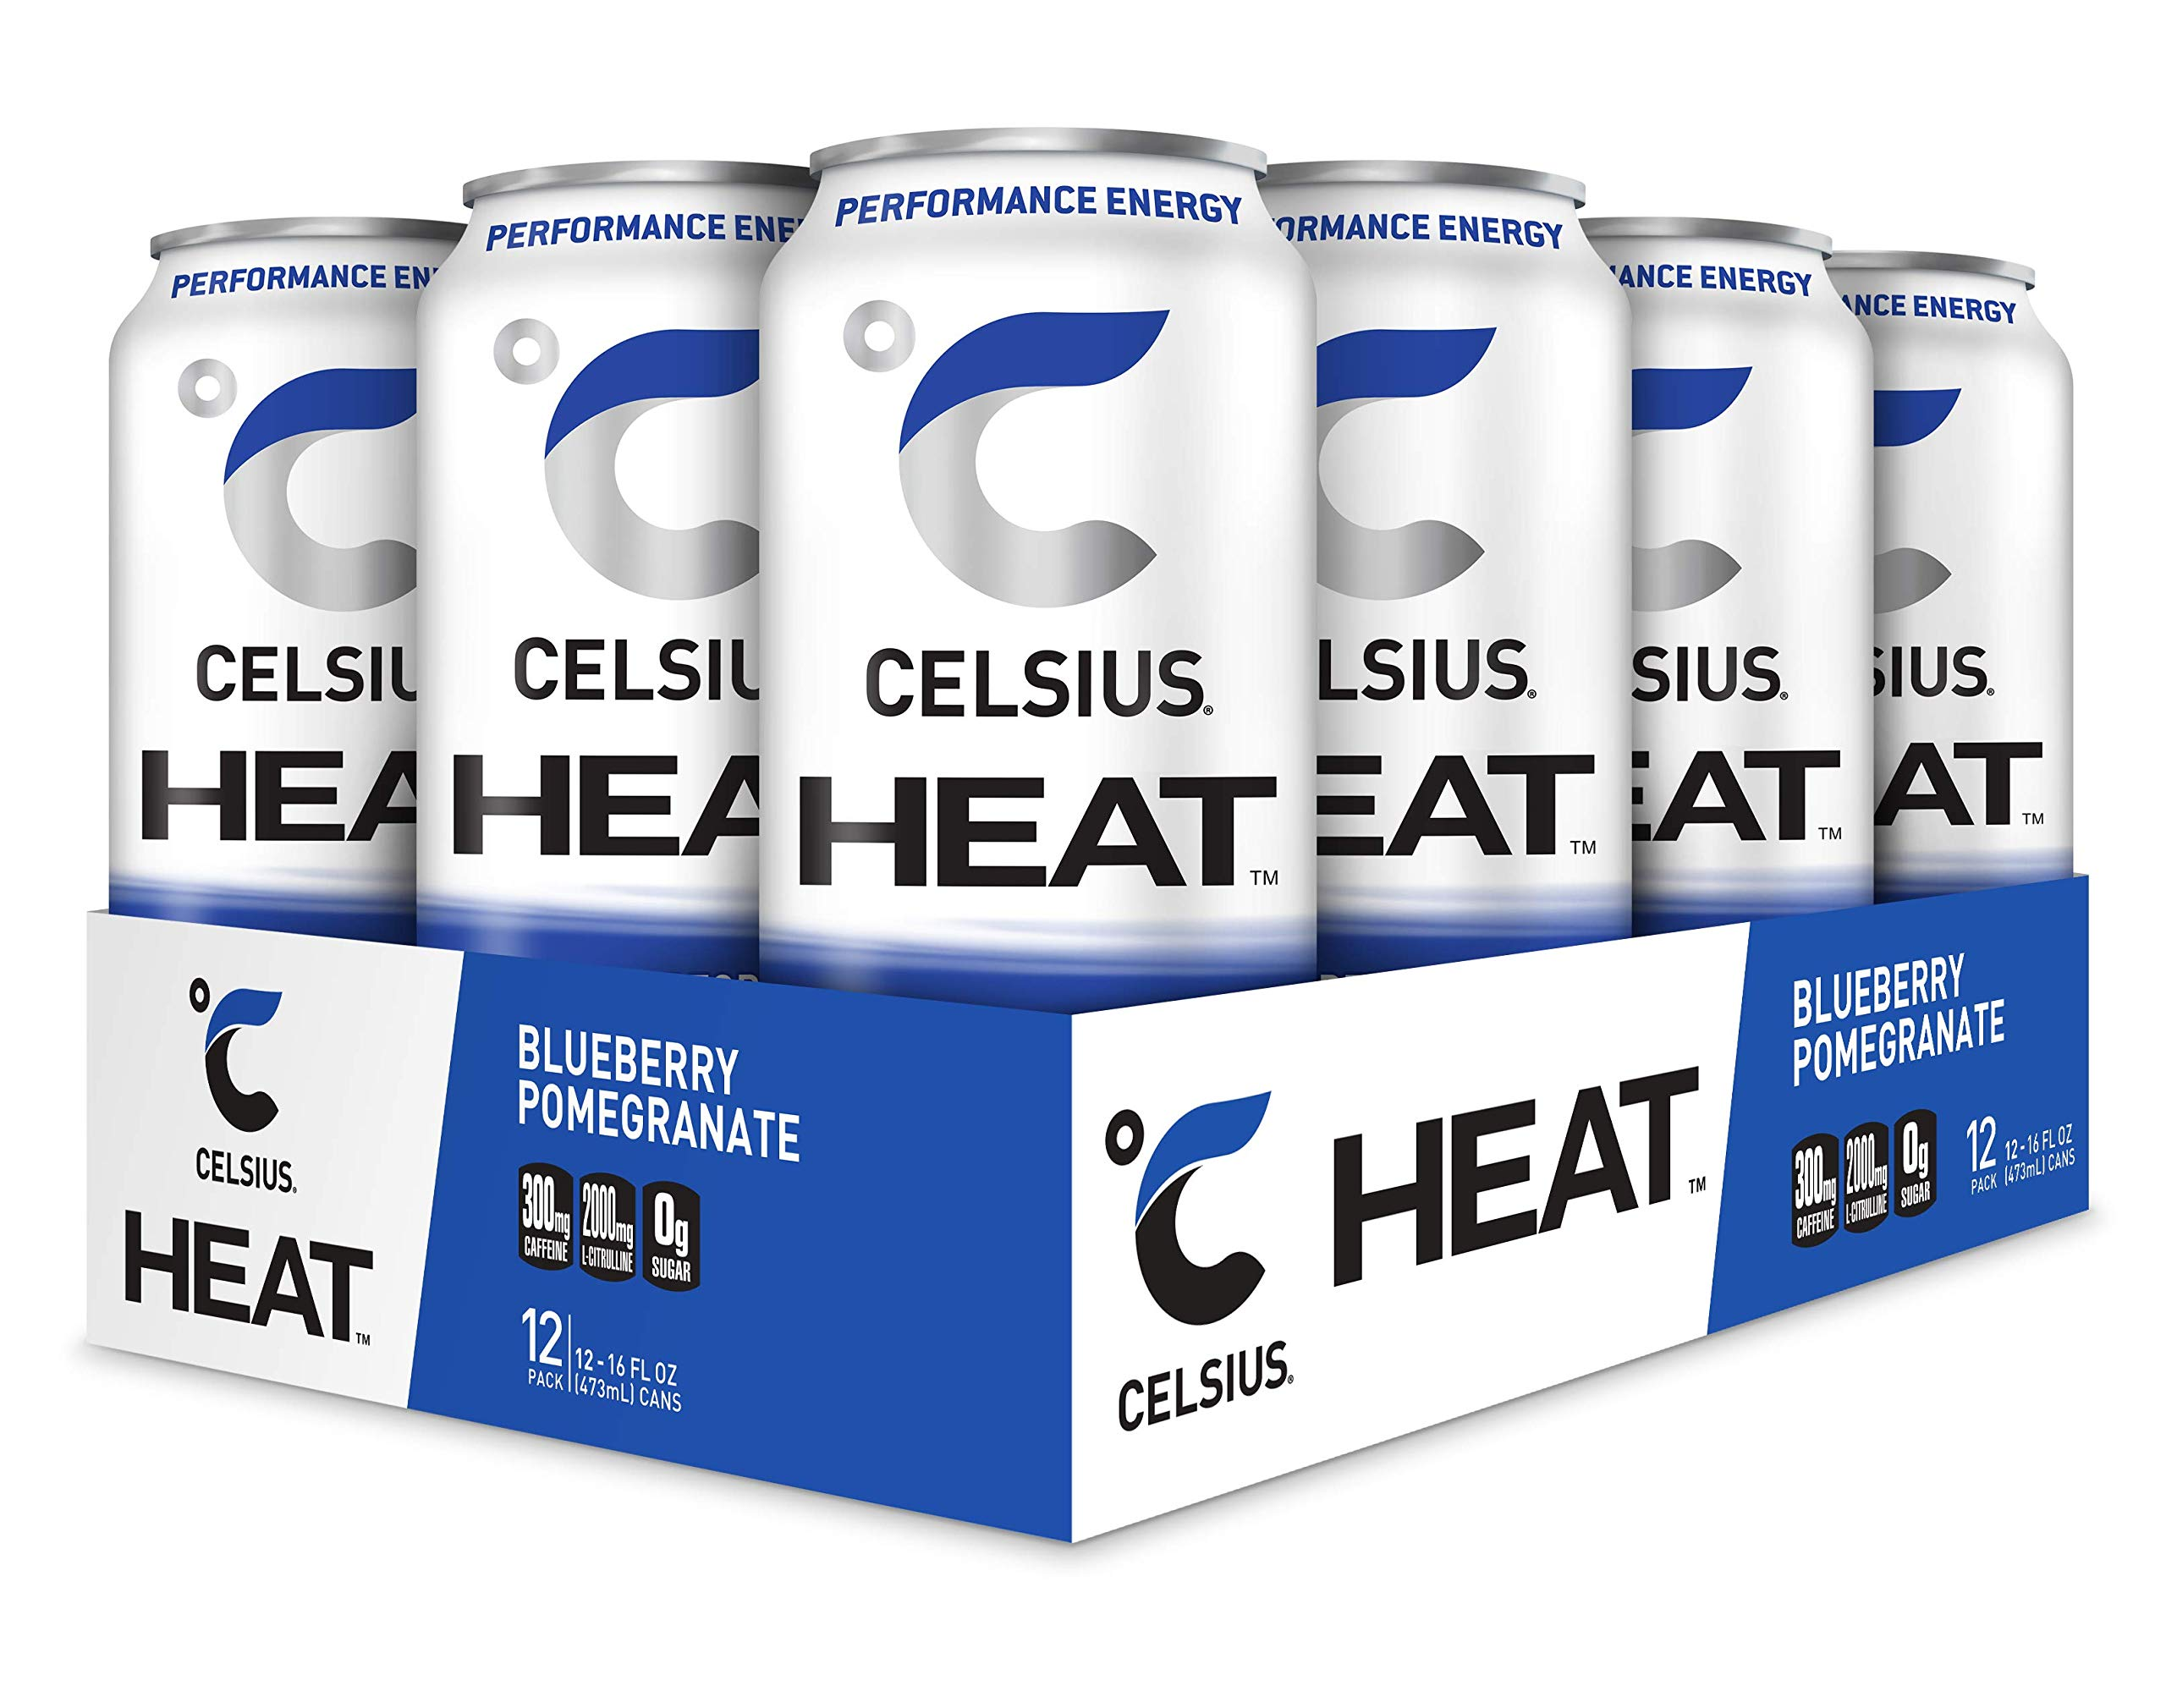 CELSIUS HEAT Blueberry Pomegranate Performance Energy Drink, Zero Sugar, 16oz. Can, 12 Pack